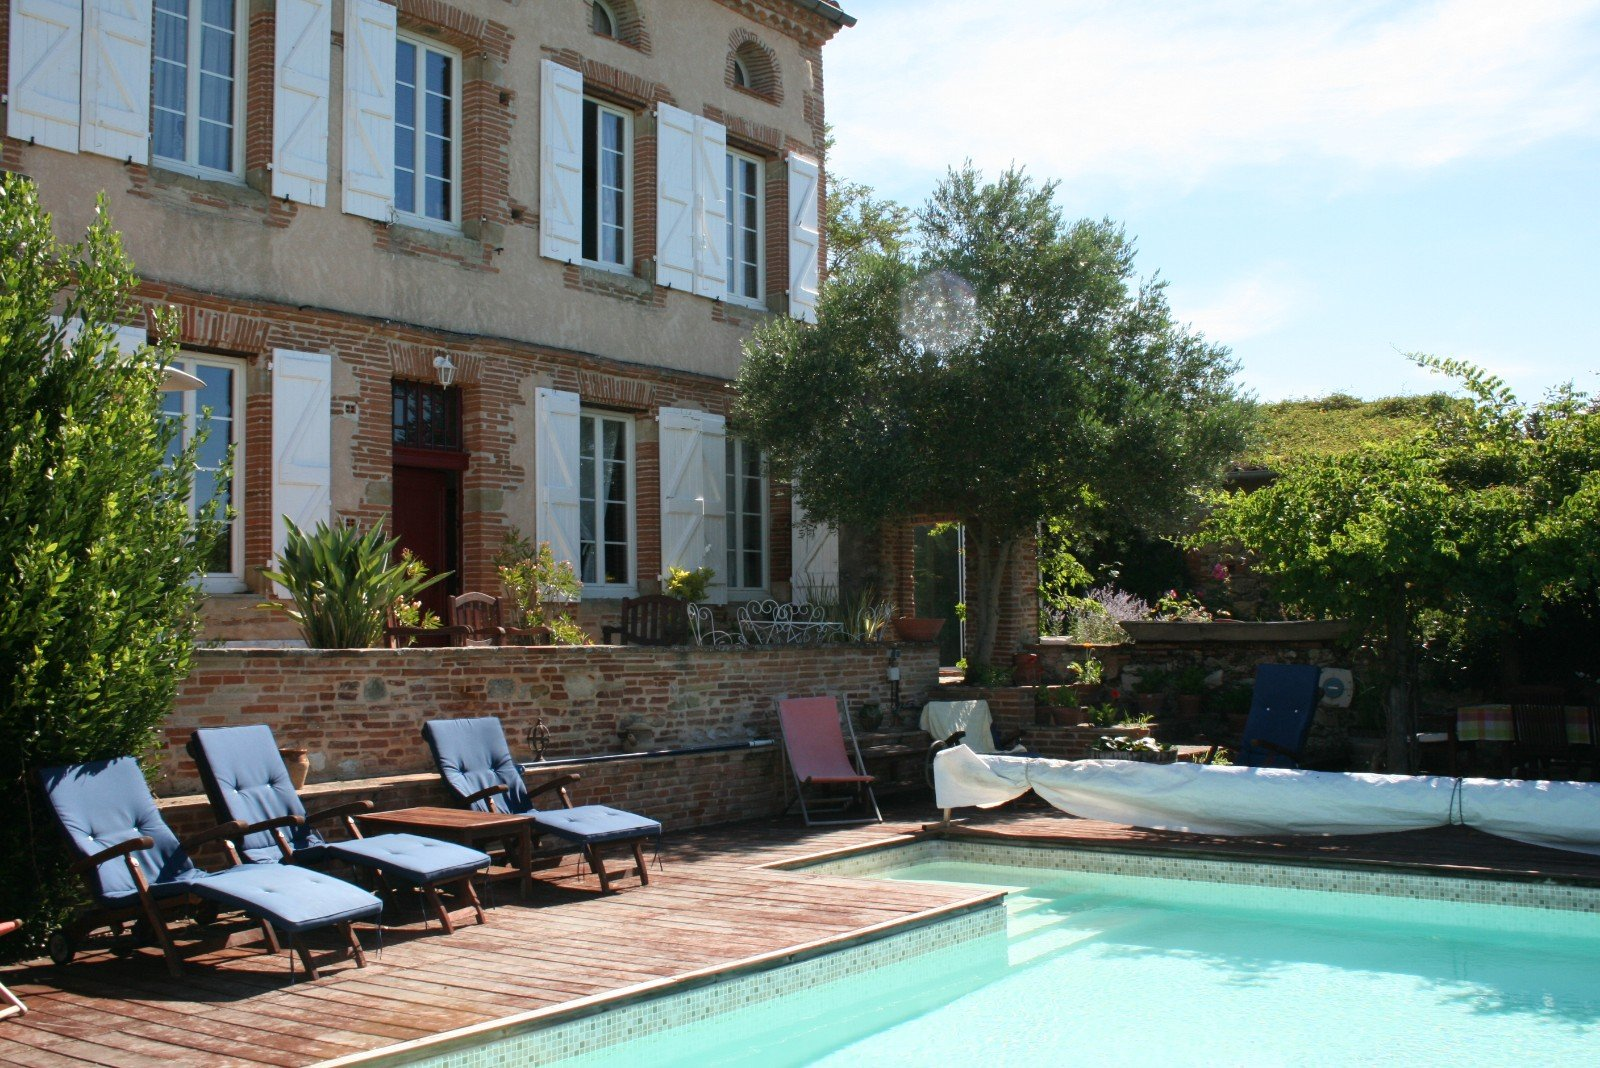 Stunning refurbished former Presbytery, with a pool and views of Tarn countryside and Pyrénées